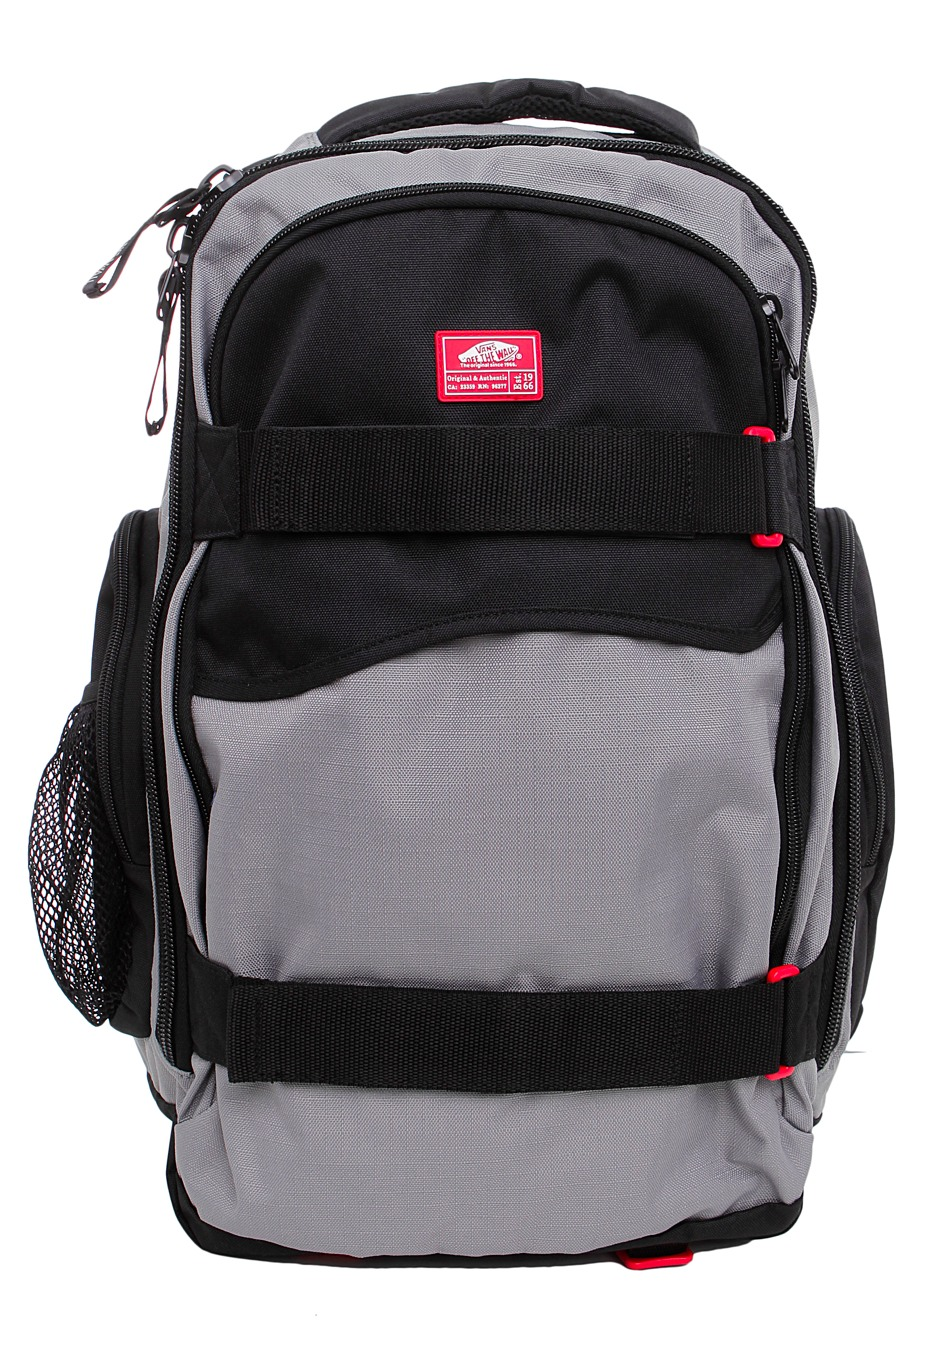 77bacd537d509a Vans - Transient Skatepack Cement - Backpack - Impericon.com UK